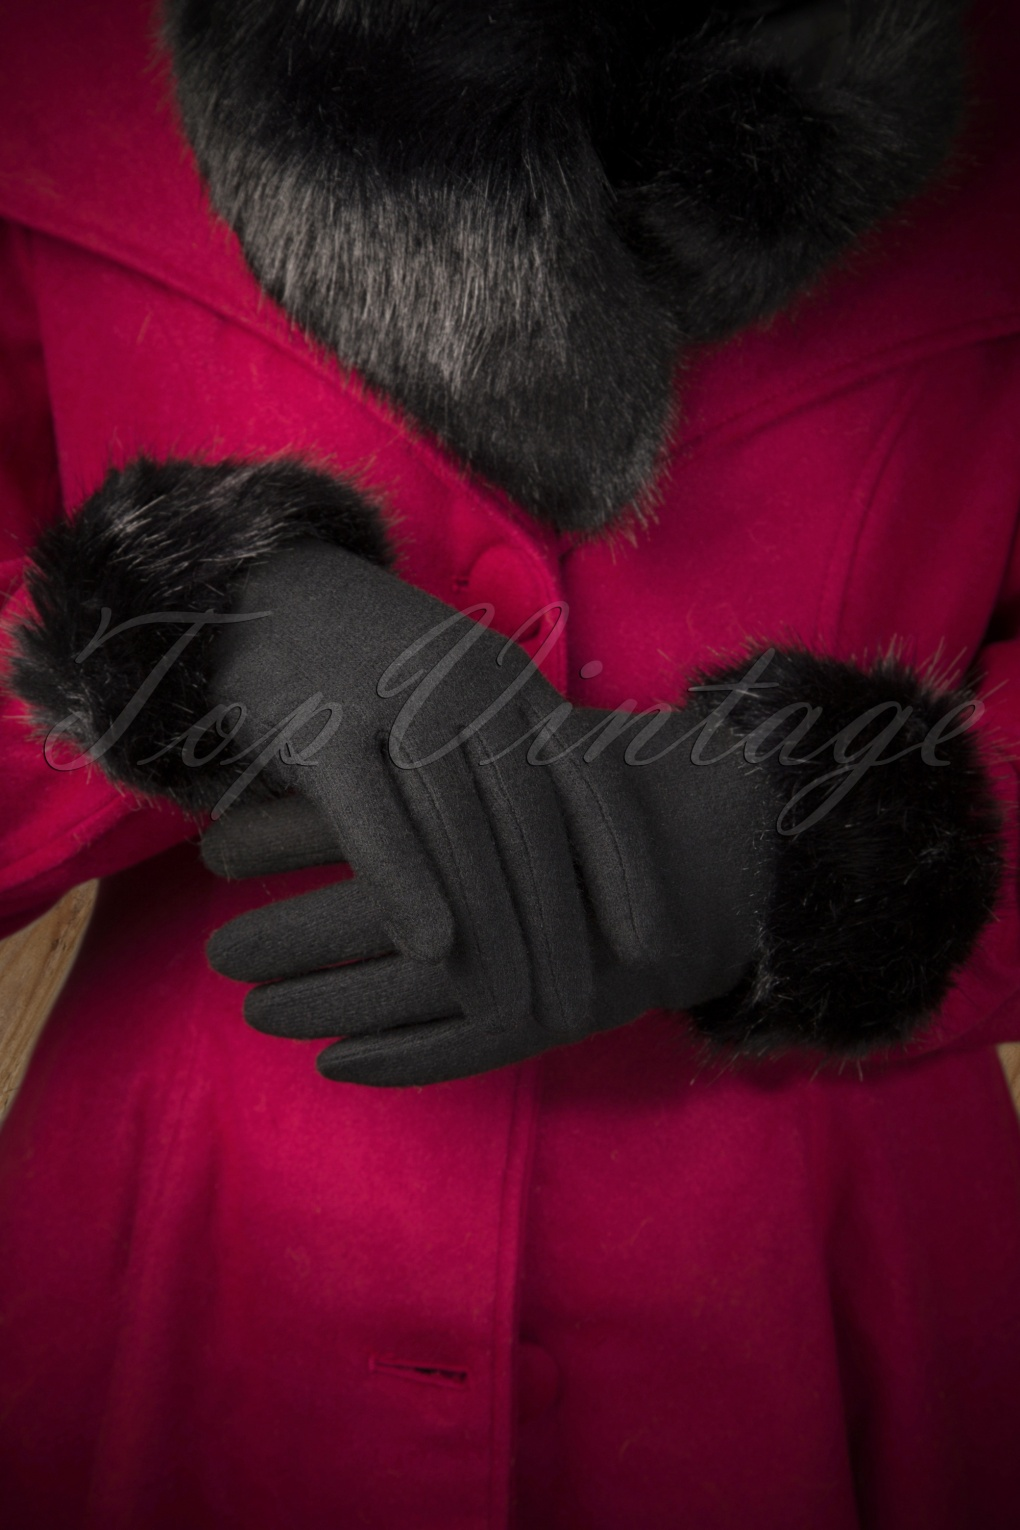 Vintage Style Gloves- Long, Wrist, Evening, Day, Leather, Lace 50s Furry Wool Gloves in Black £21.43 AT vintagedancer.com